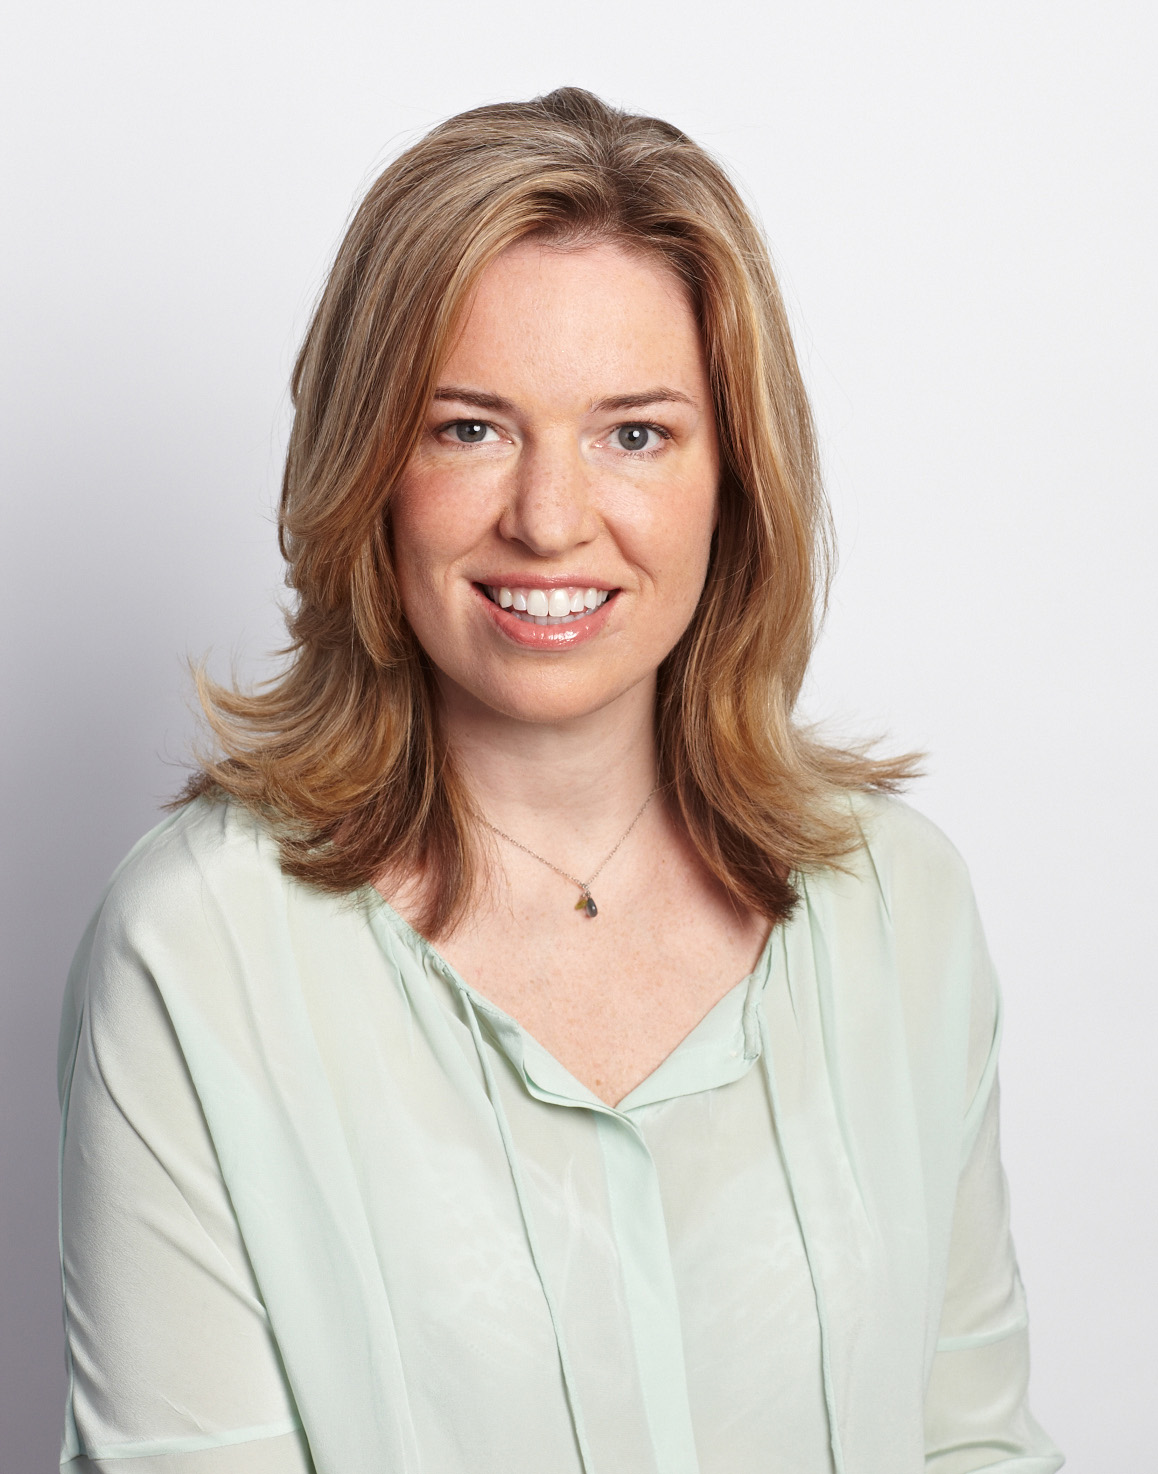 Virginia Heffernan's Headshot